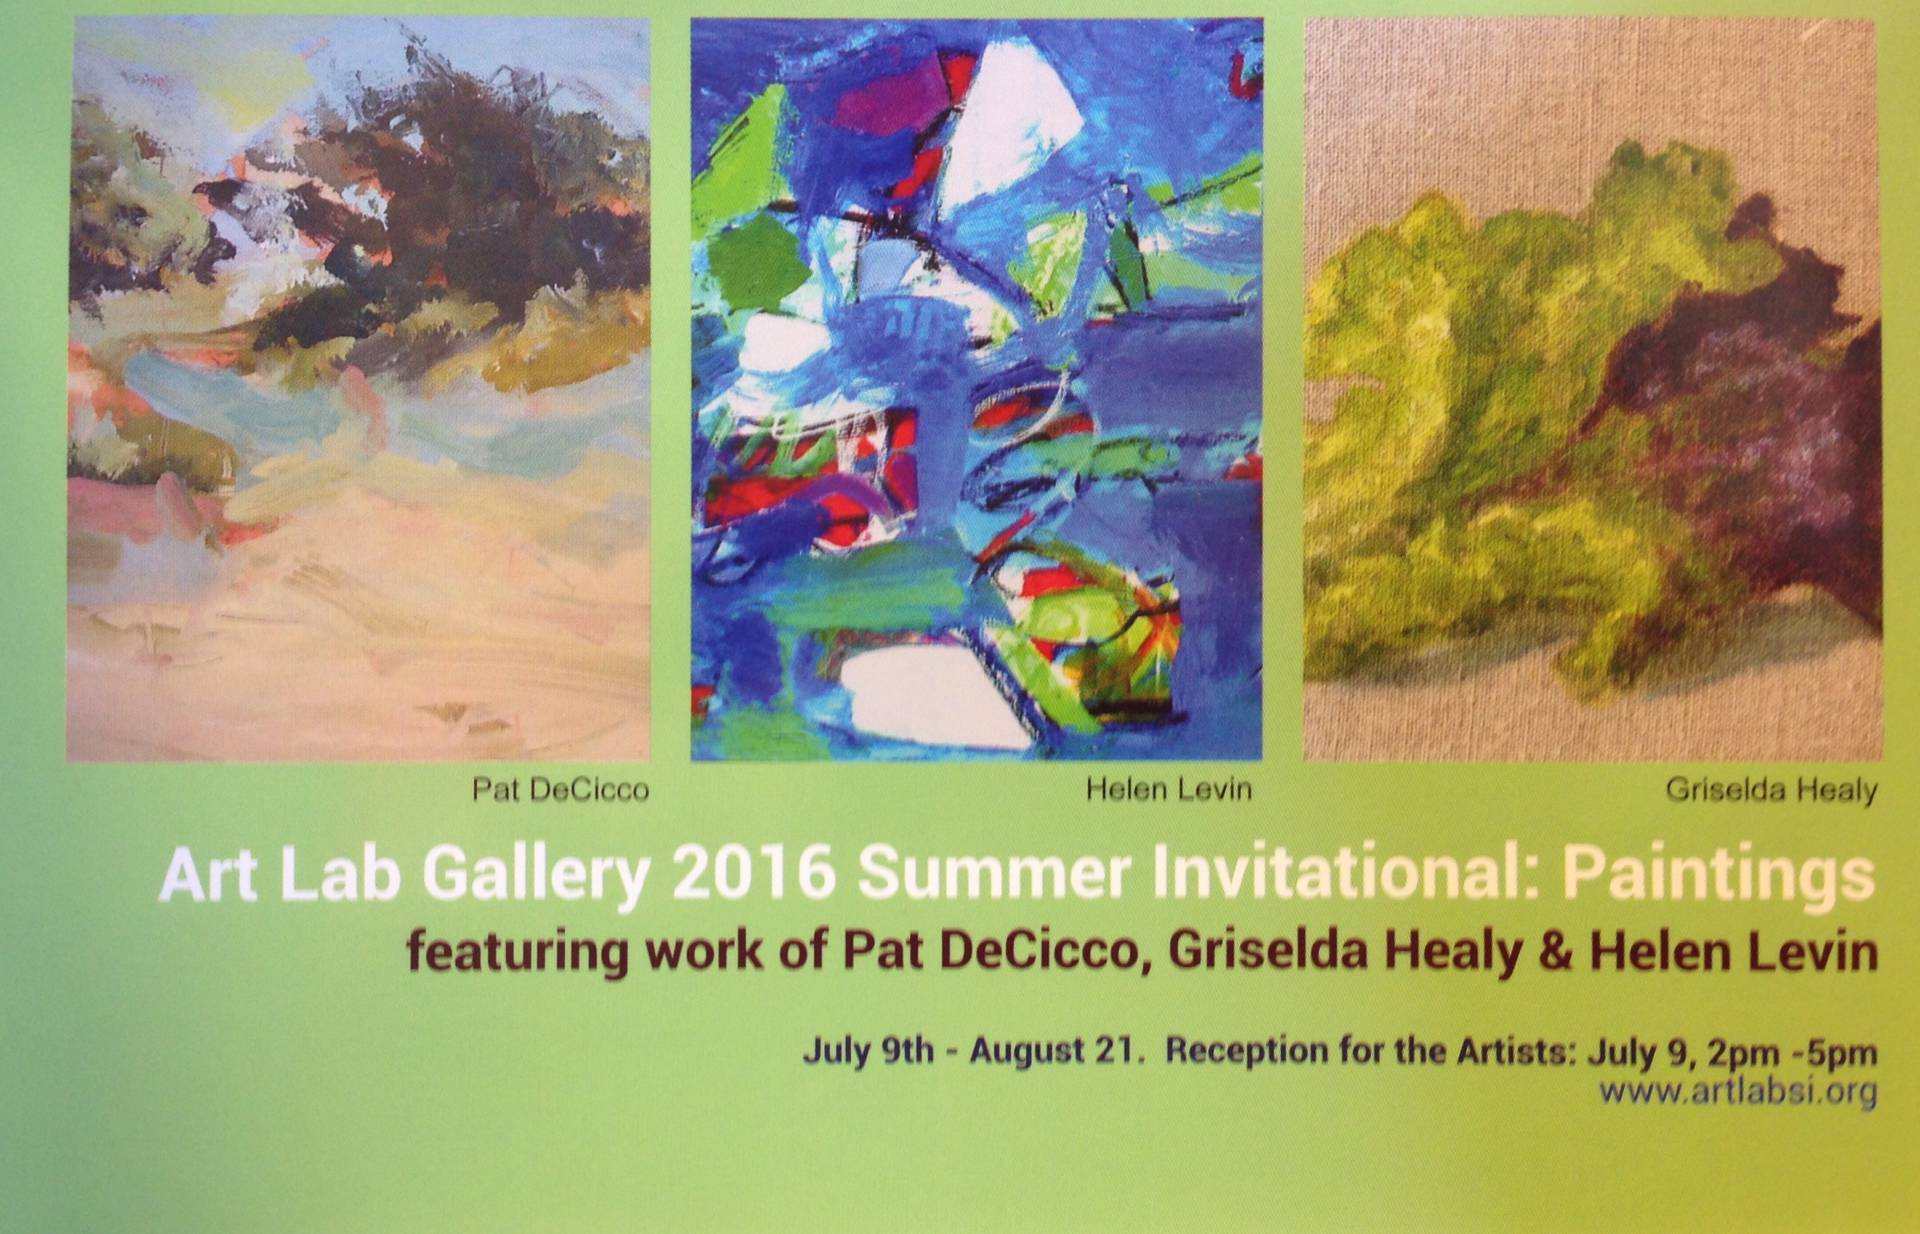 Details on Art Lab's Summer Invitational for 2016